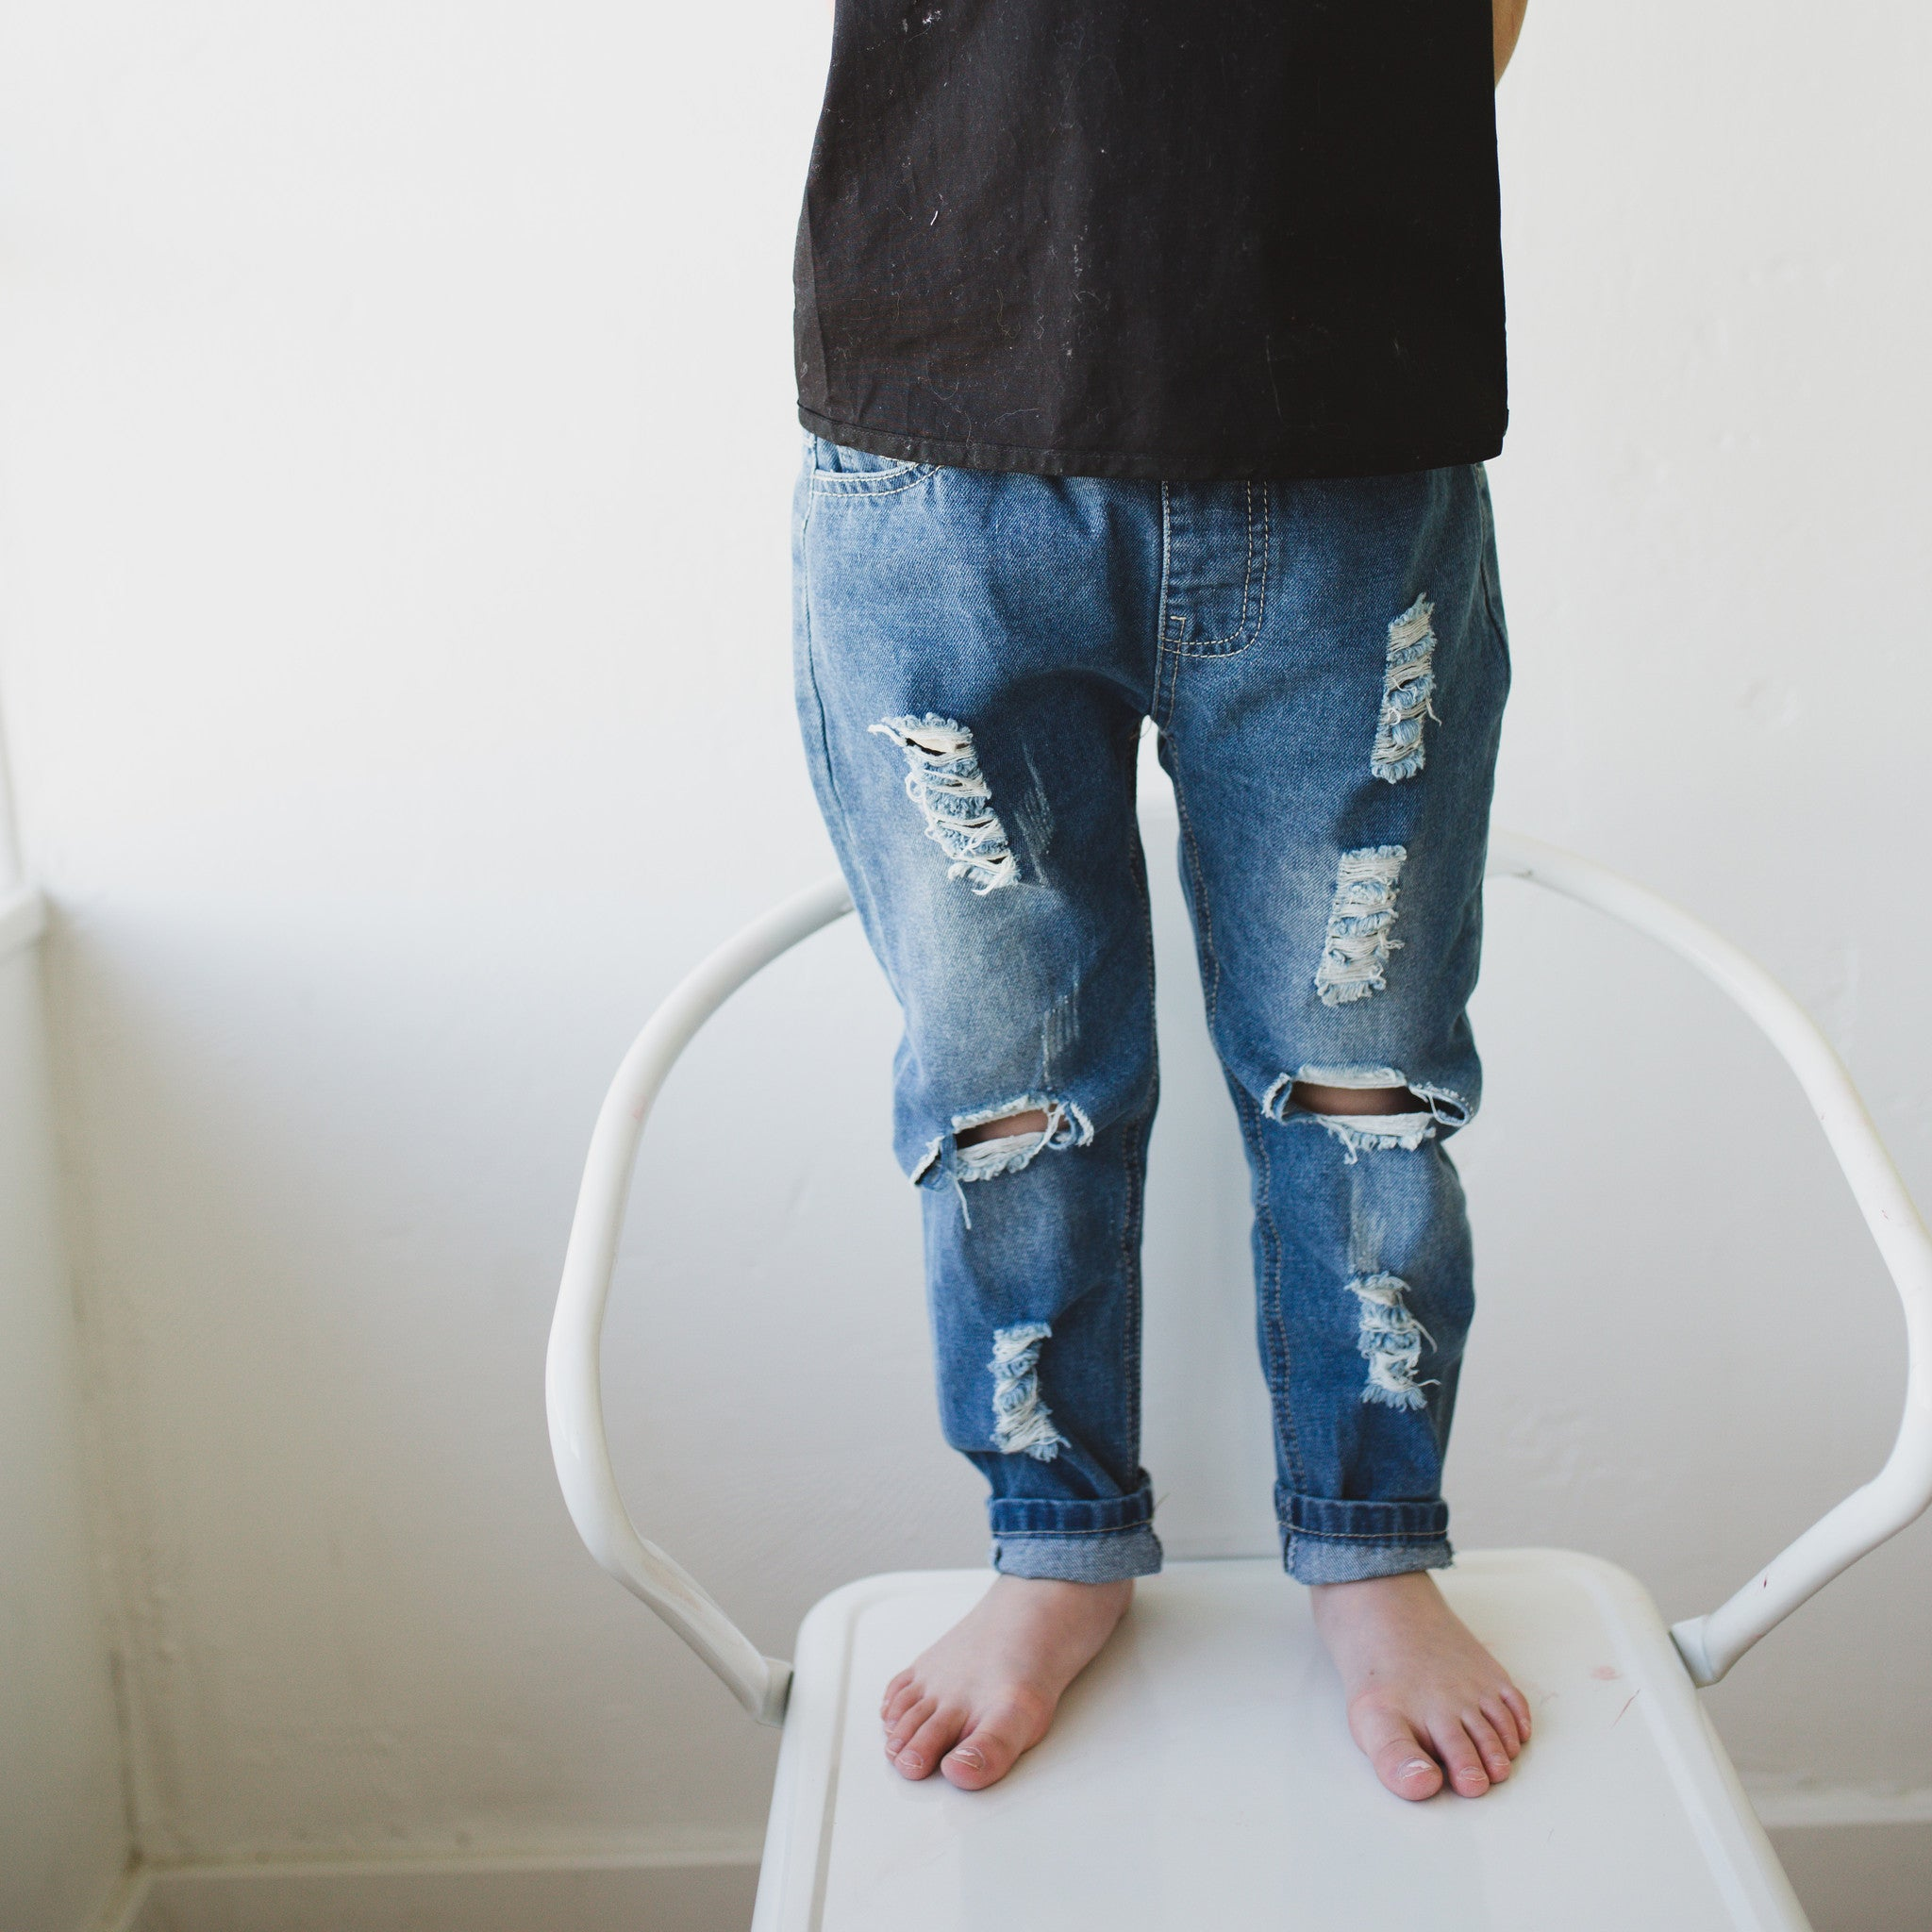 We love these Holy Jeans!!  They are so comfy and stylish.